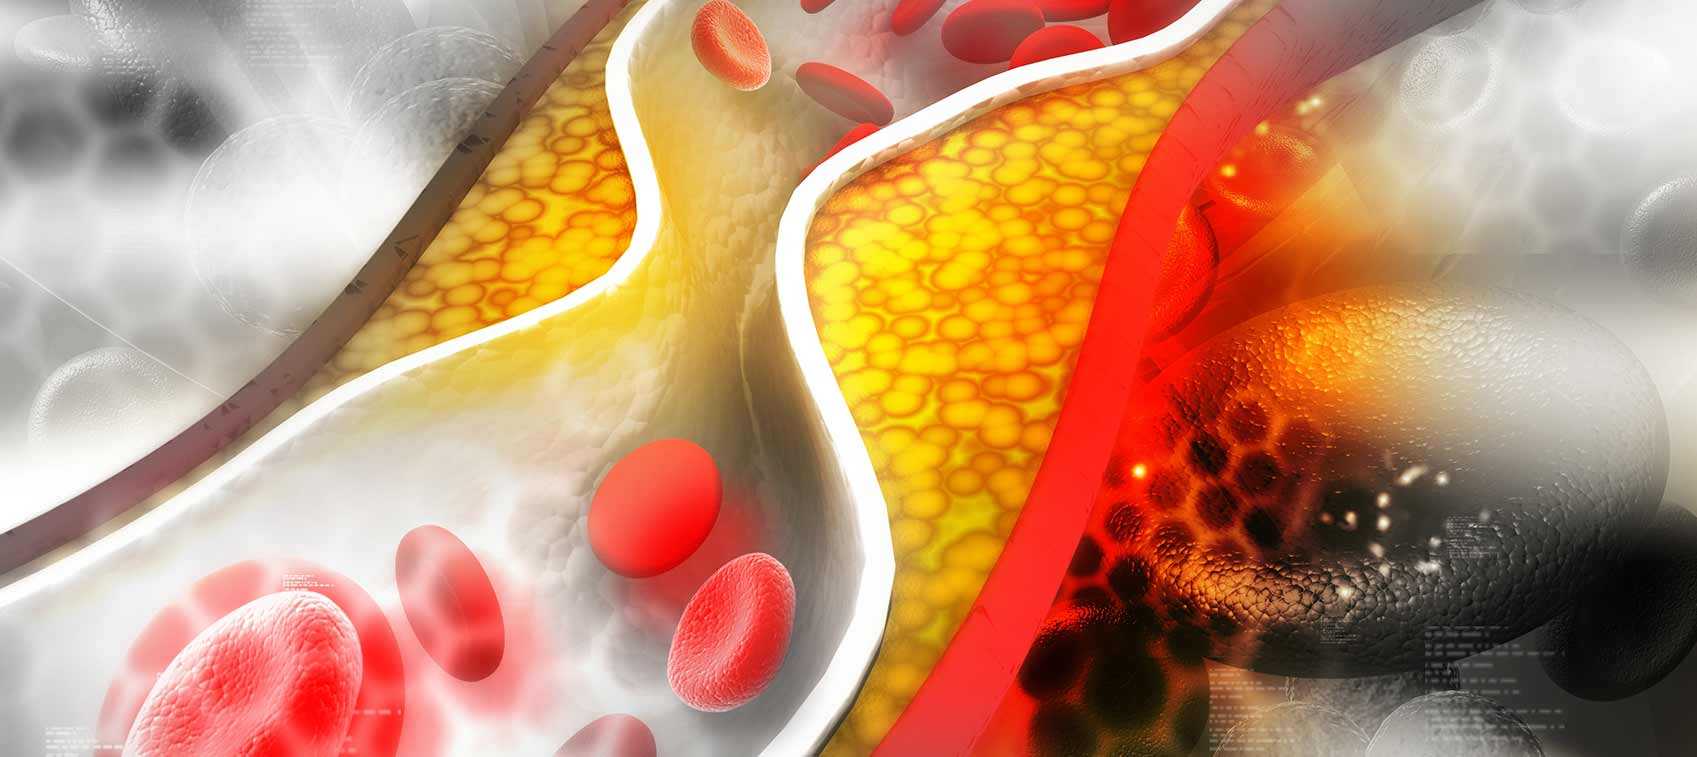 What is cholesterol and dangerous for health?